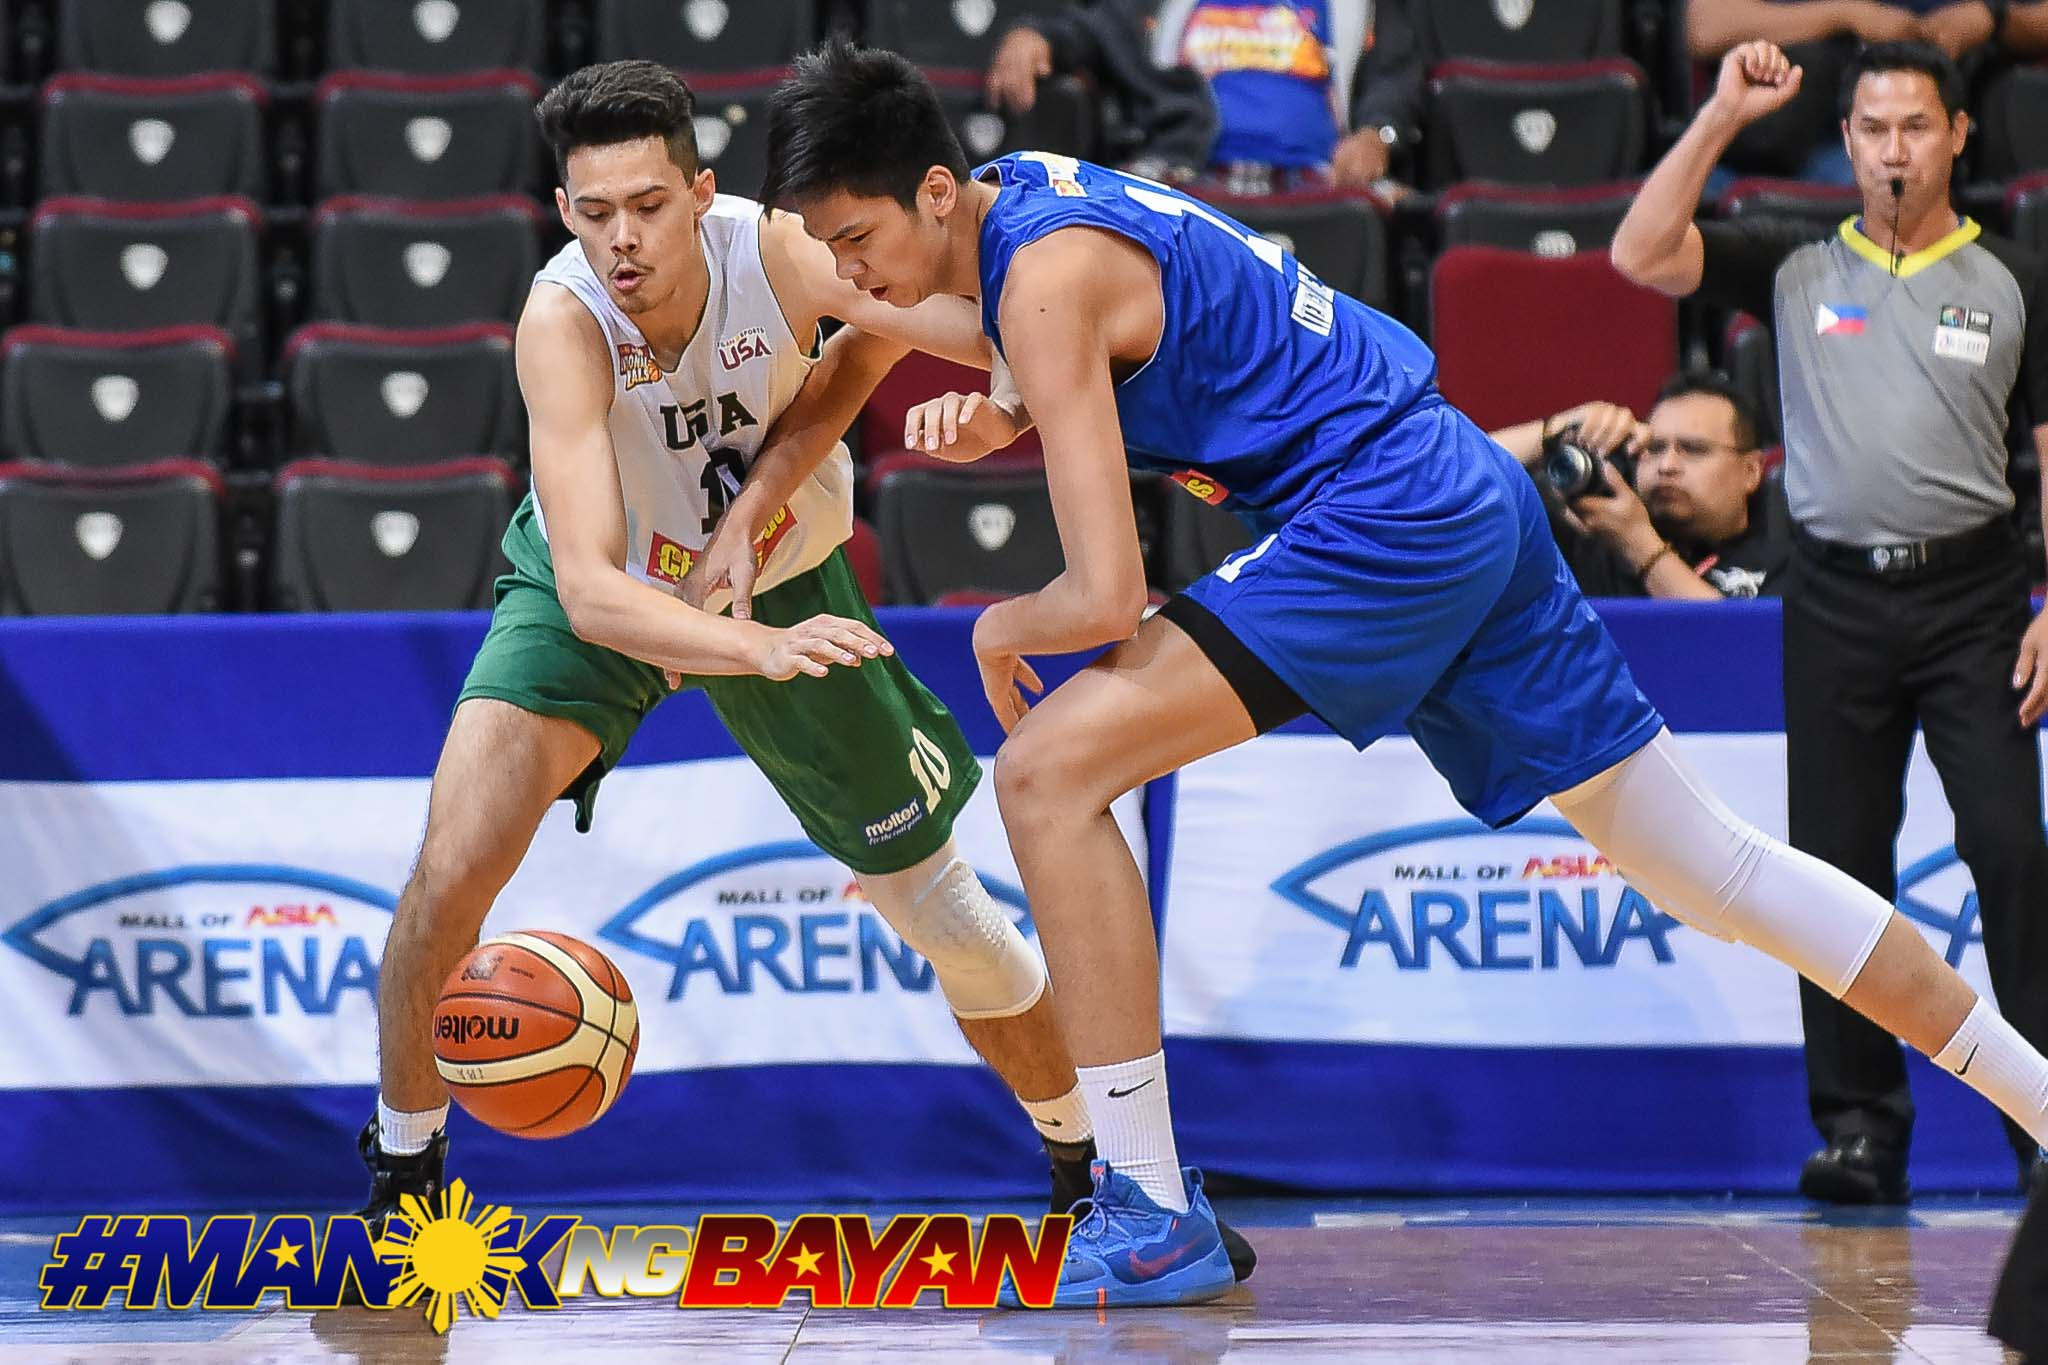 Tiebreaker Times Fil-Am's Ballungay out to prove there's another Kai in town Basketball NBTC News  Kai Ballungay FilAm Sports USA 2019 NBTC Season